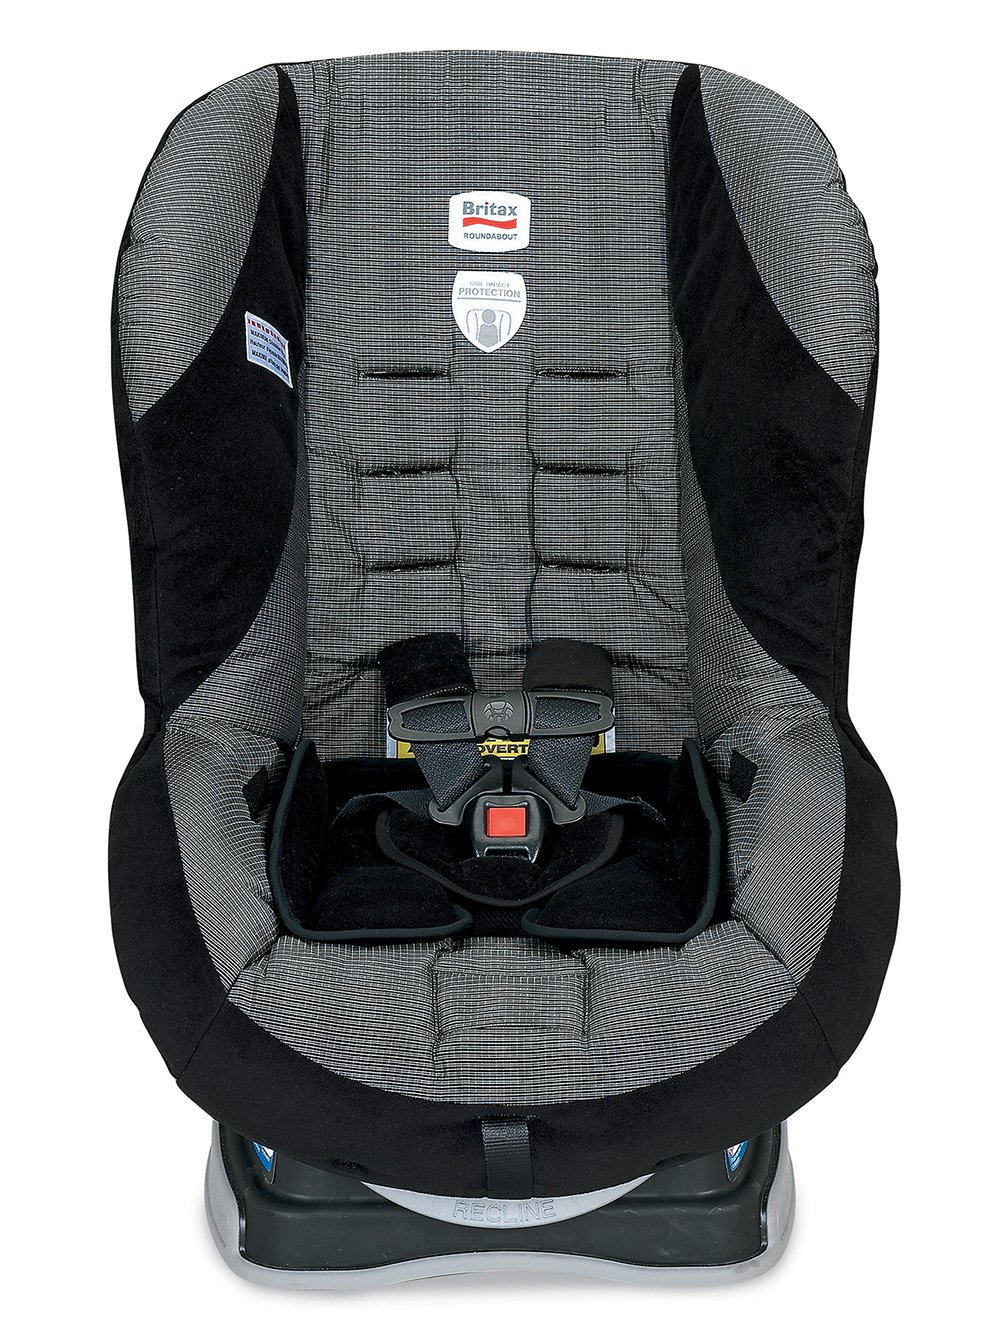 britax roundabout g4 convertible car seat onyx prior model amazon. Black Bedroom Furniture Sets. Home Design Ideas